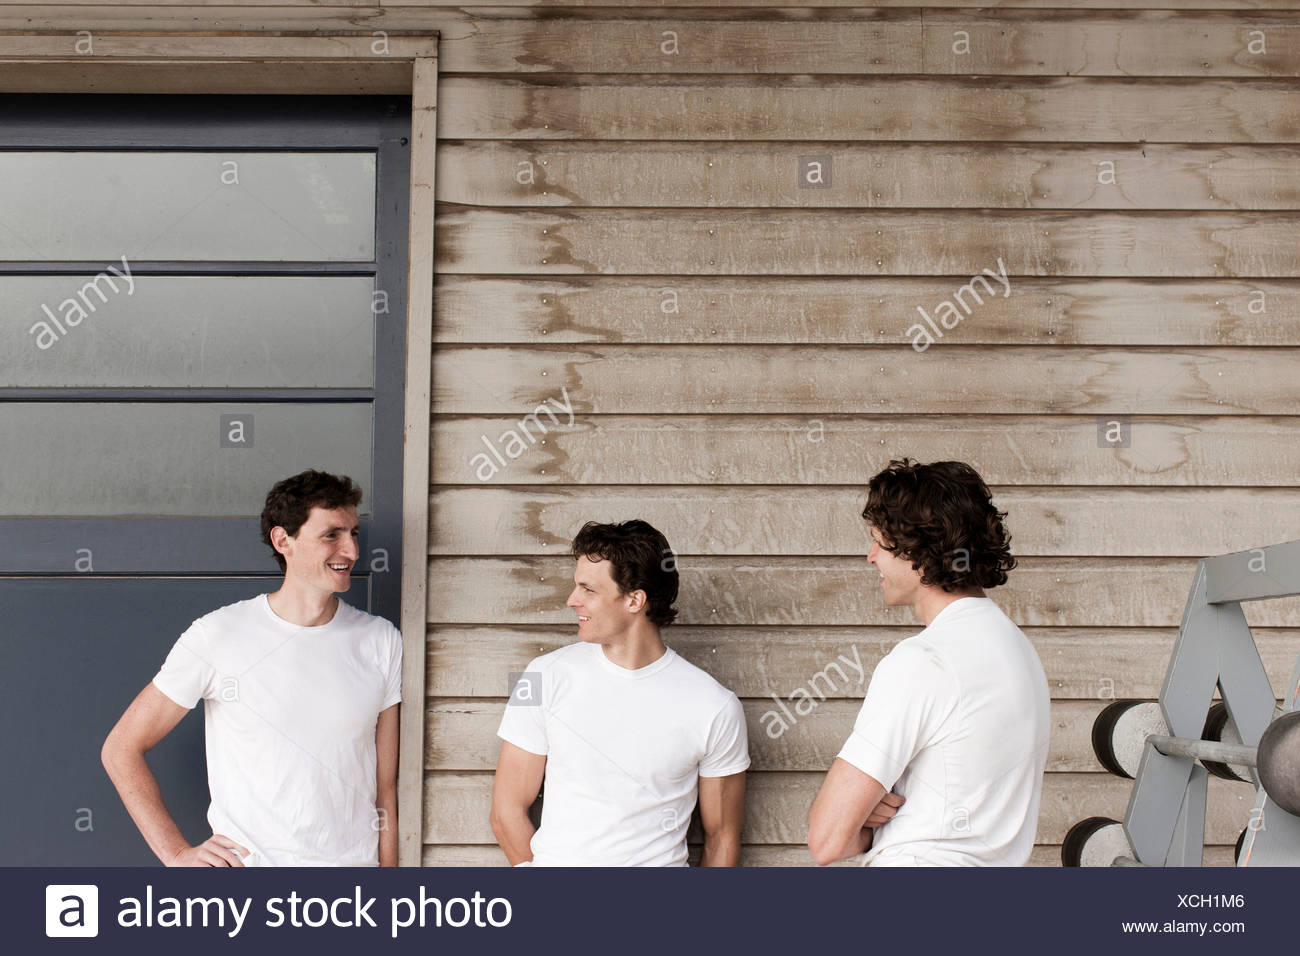 Men standing and chatting on front porch Stock Photo